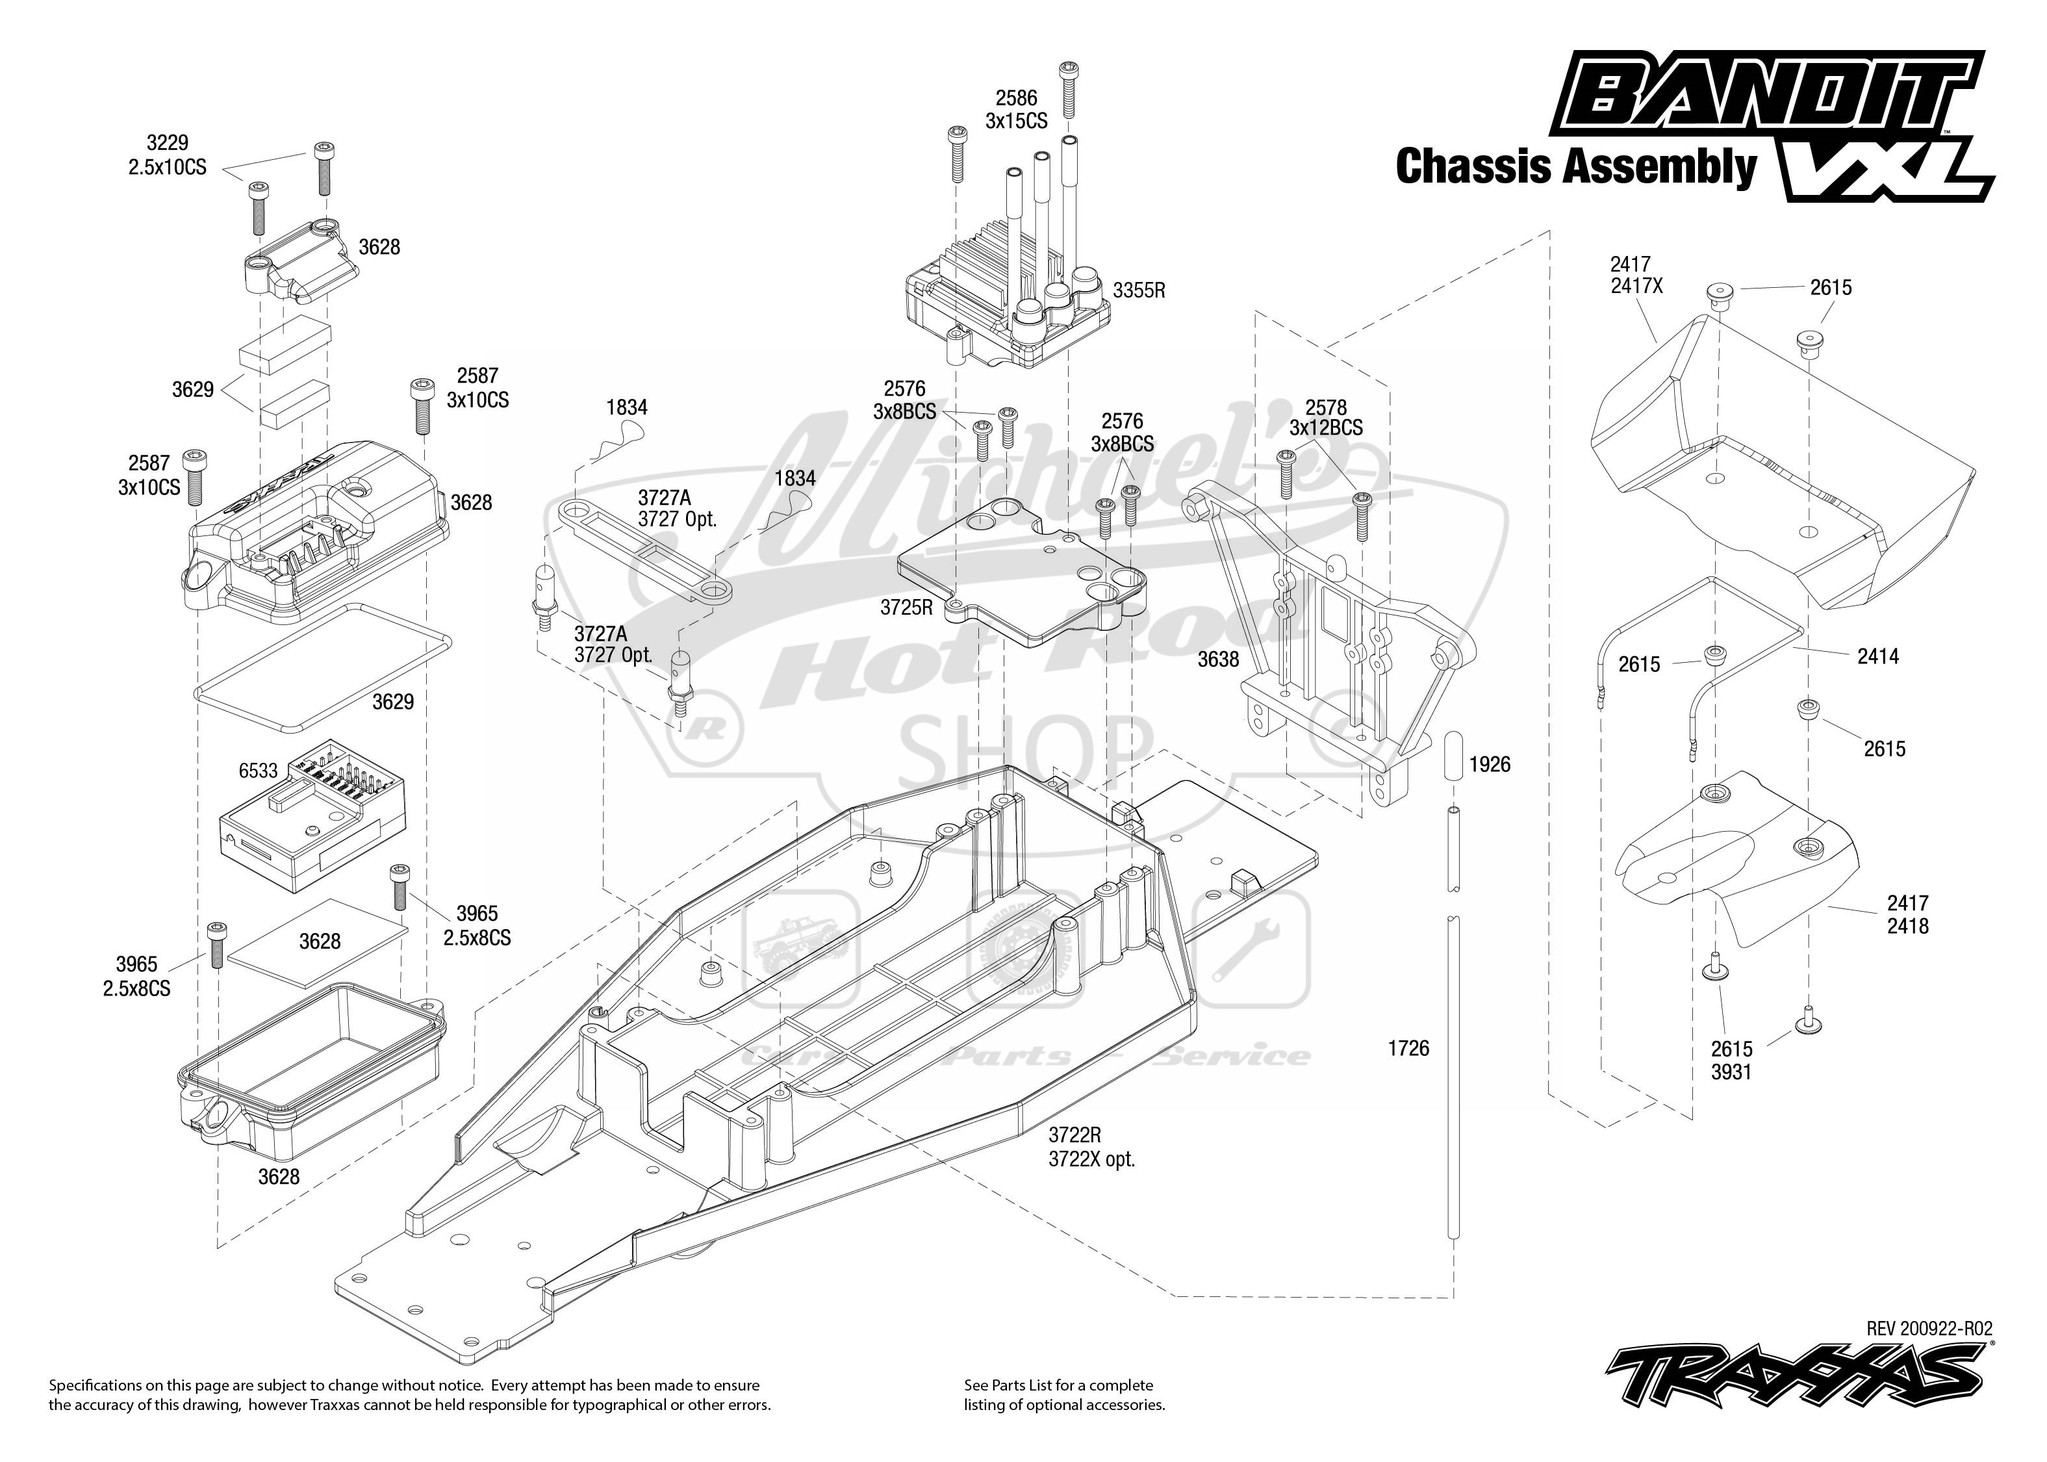 Bandit VXL Chassis Assembly